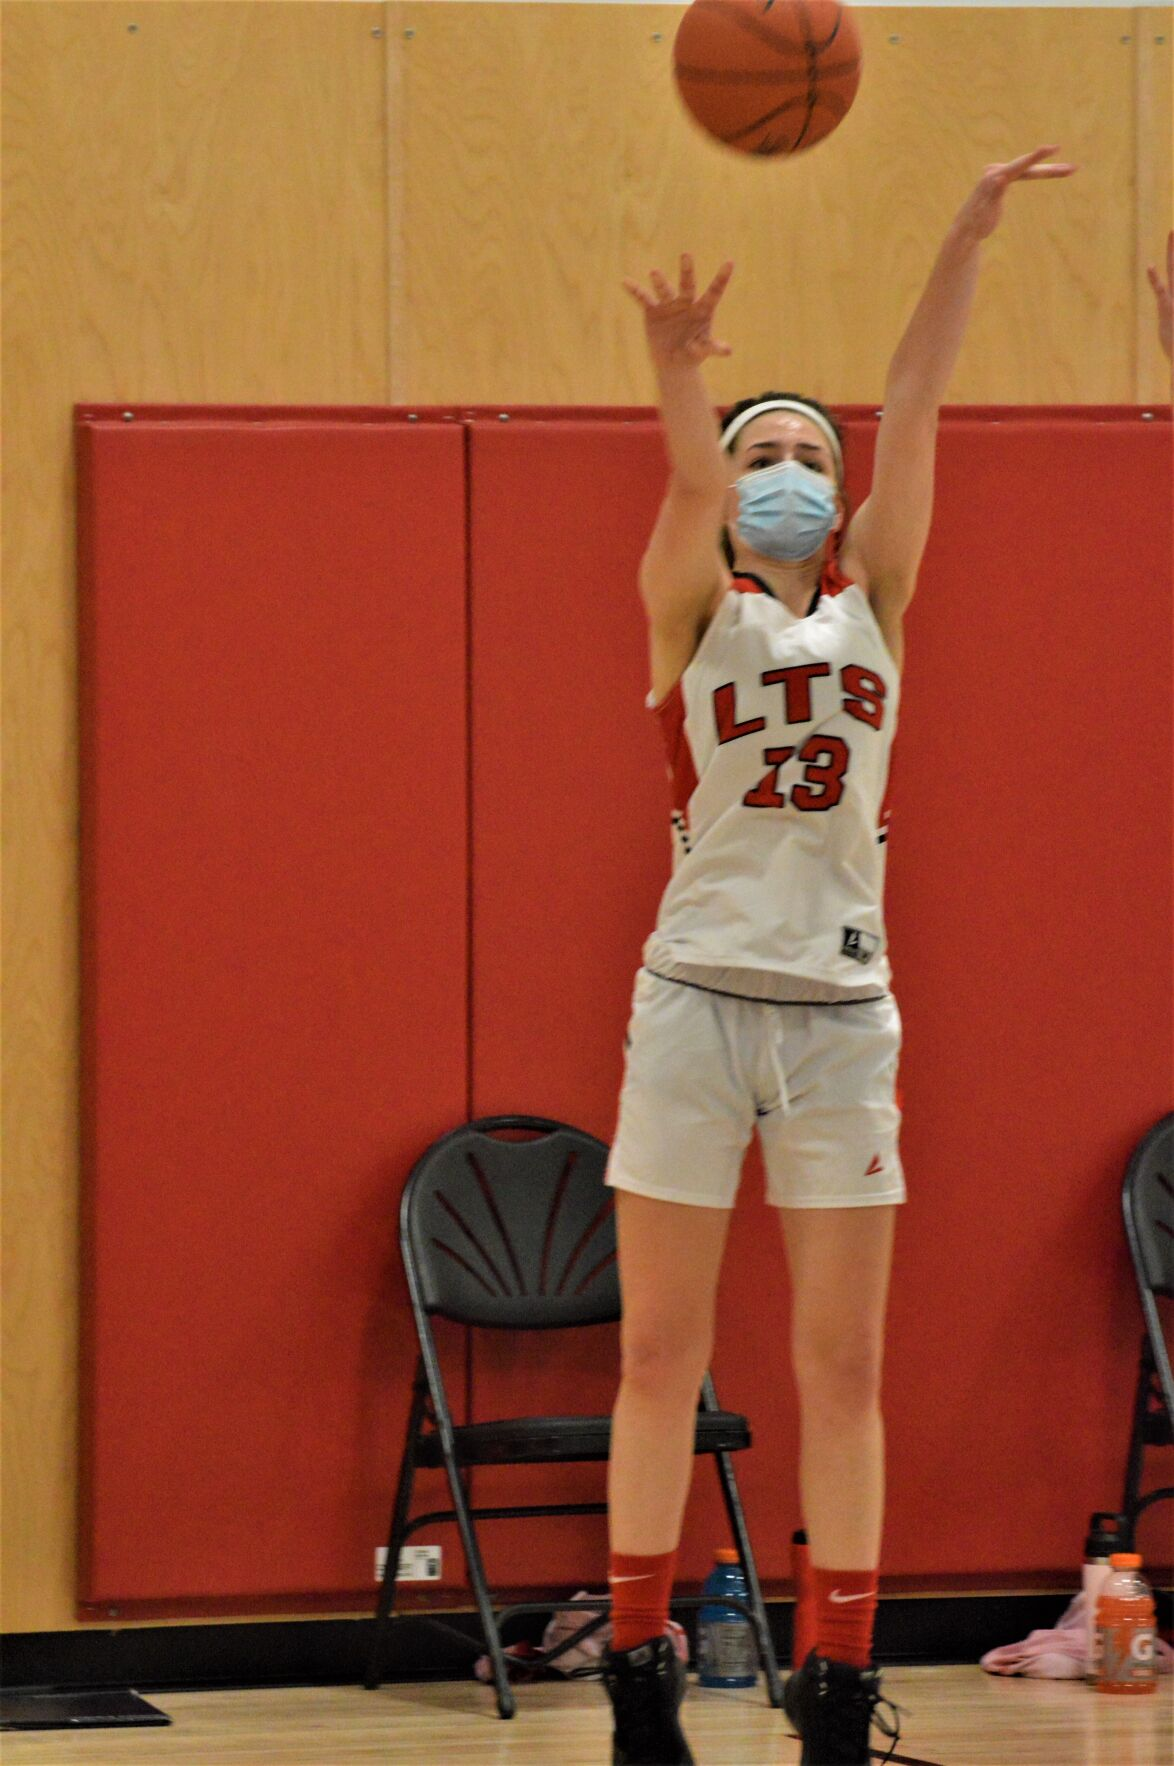 Molly Sanderson shoots a 3-pointer for Long Trail School